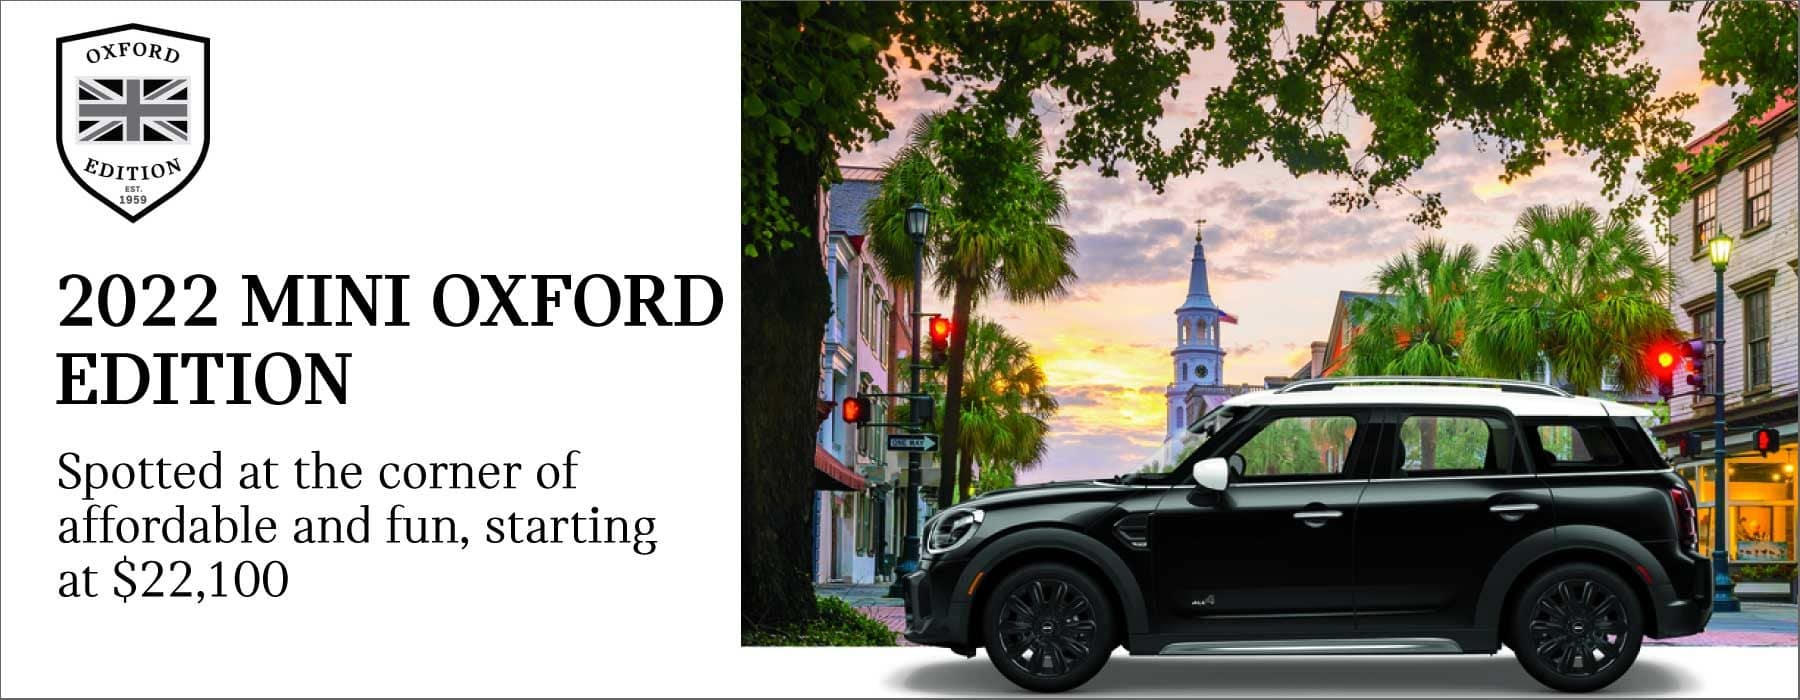 2022 MINI oxford edition. Spotted at the corner of affordable and fun, starting at $22,100. Image shows a black oxford edition MINI vehicle parked in front of an urban area at sunset.